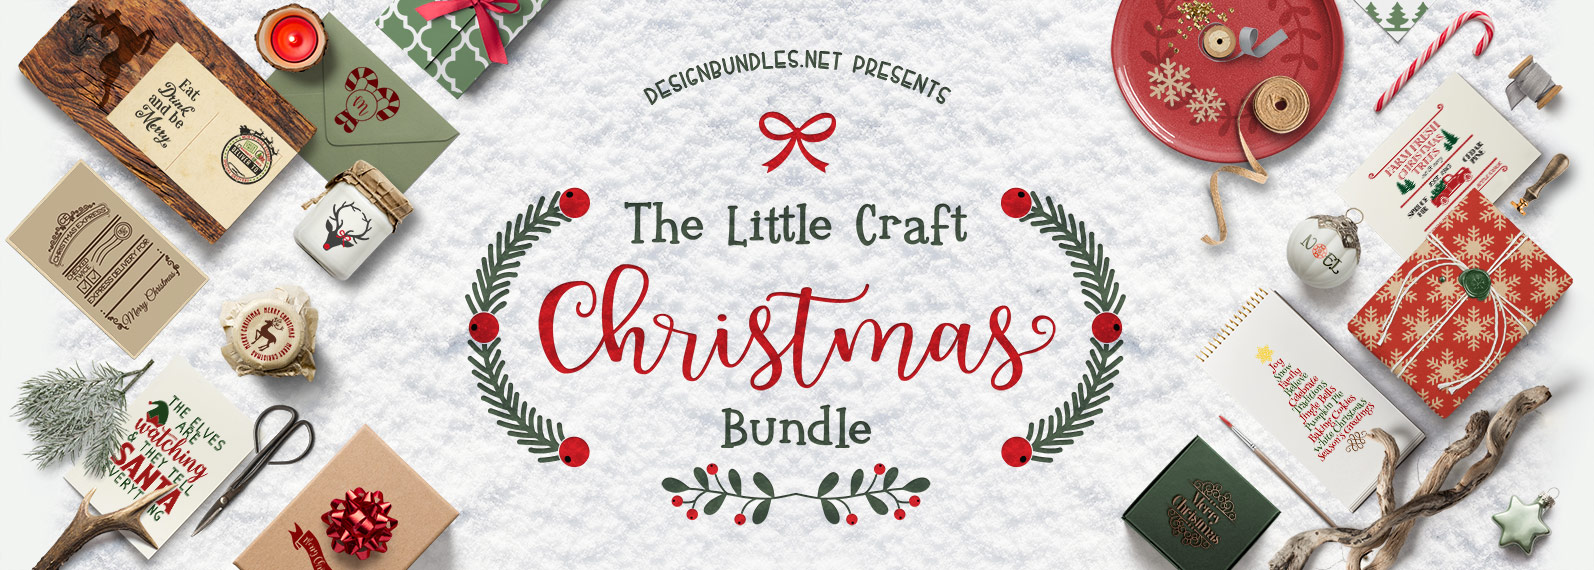 The Little Craft Christmas Bundle  Cover